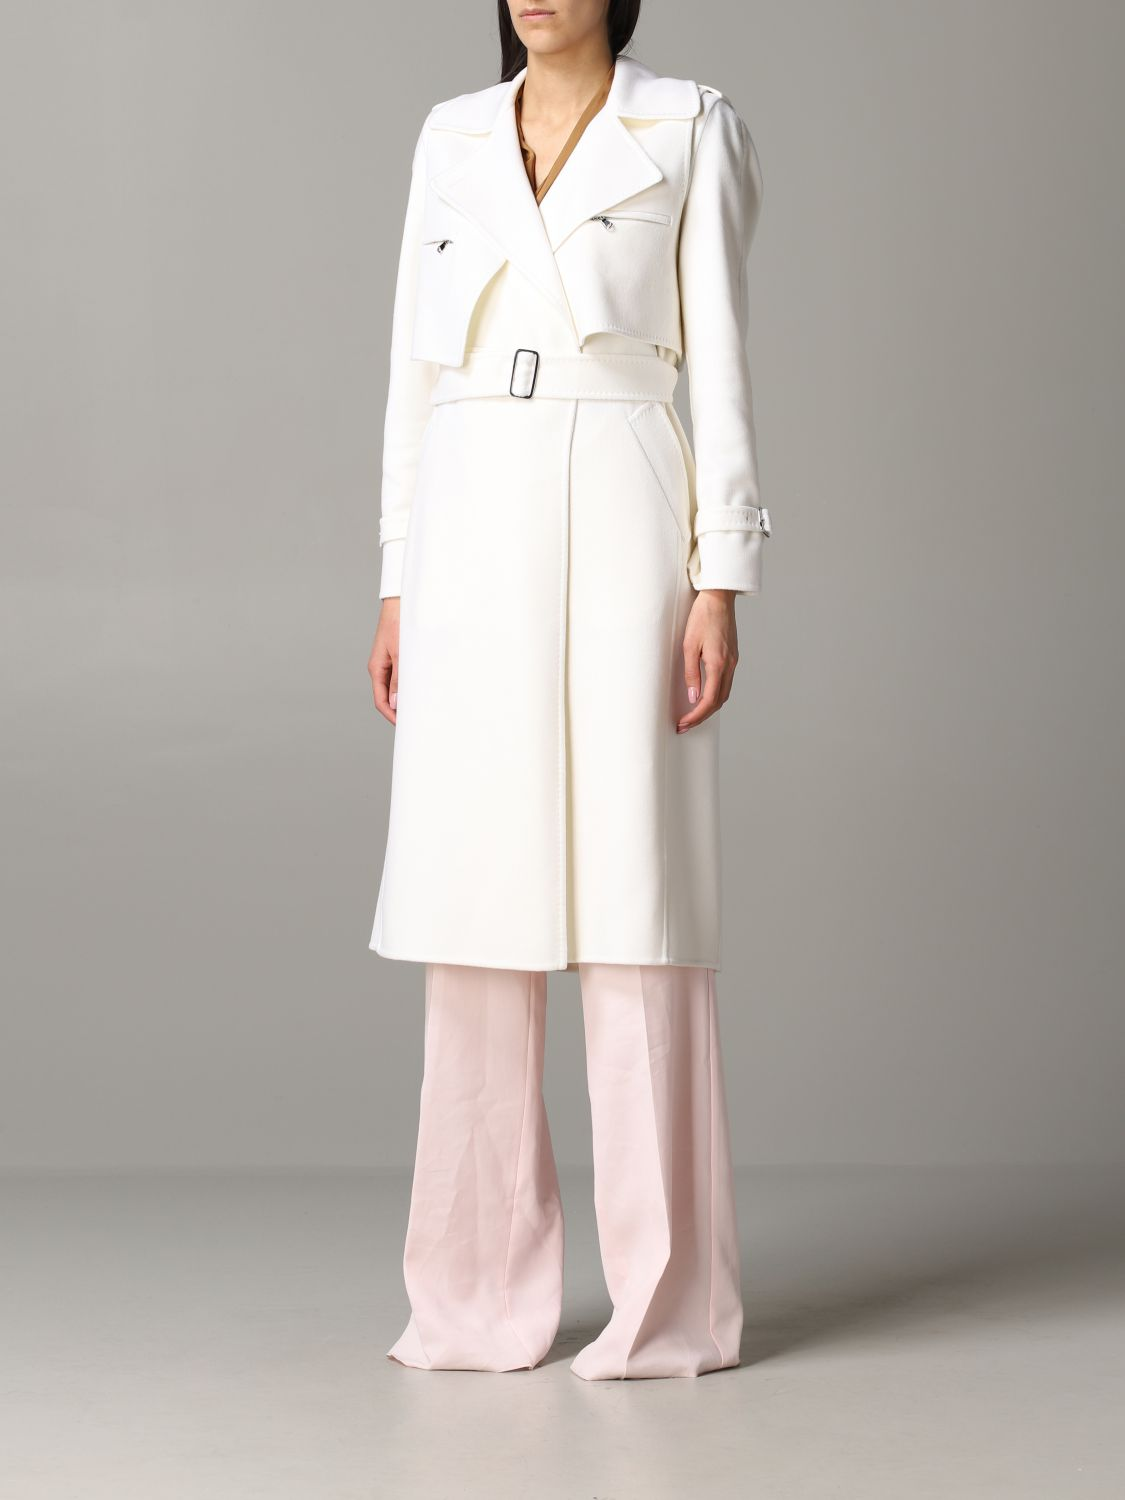 Max Mara Gianna dressing gown coat with removable vest white 4